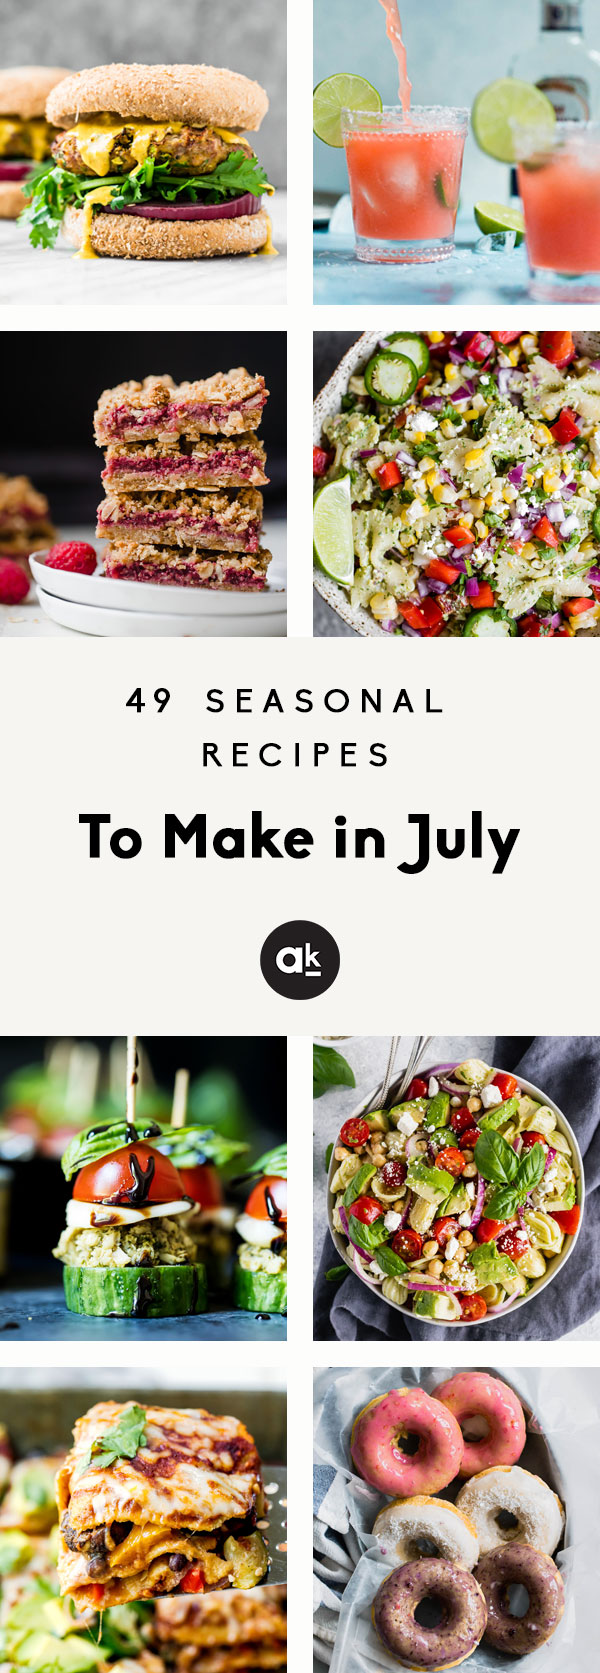 Fresh, seasonal recipes to make in July! Summer is in full-swing, so it's time for grilling and filling your plate with delicious produce.